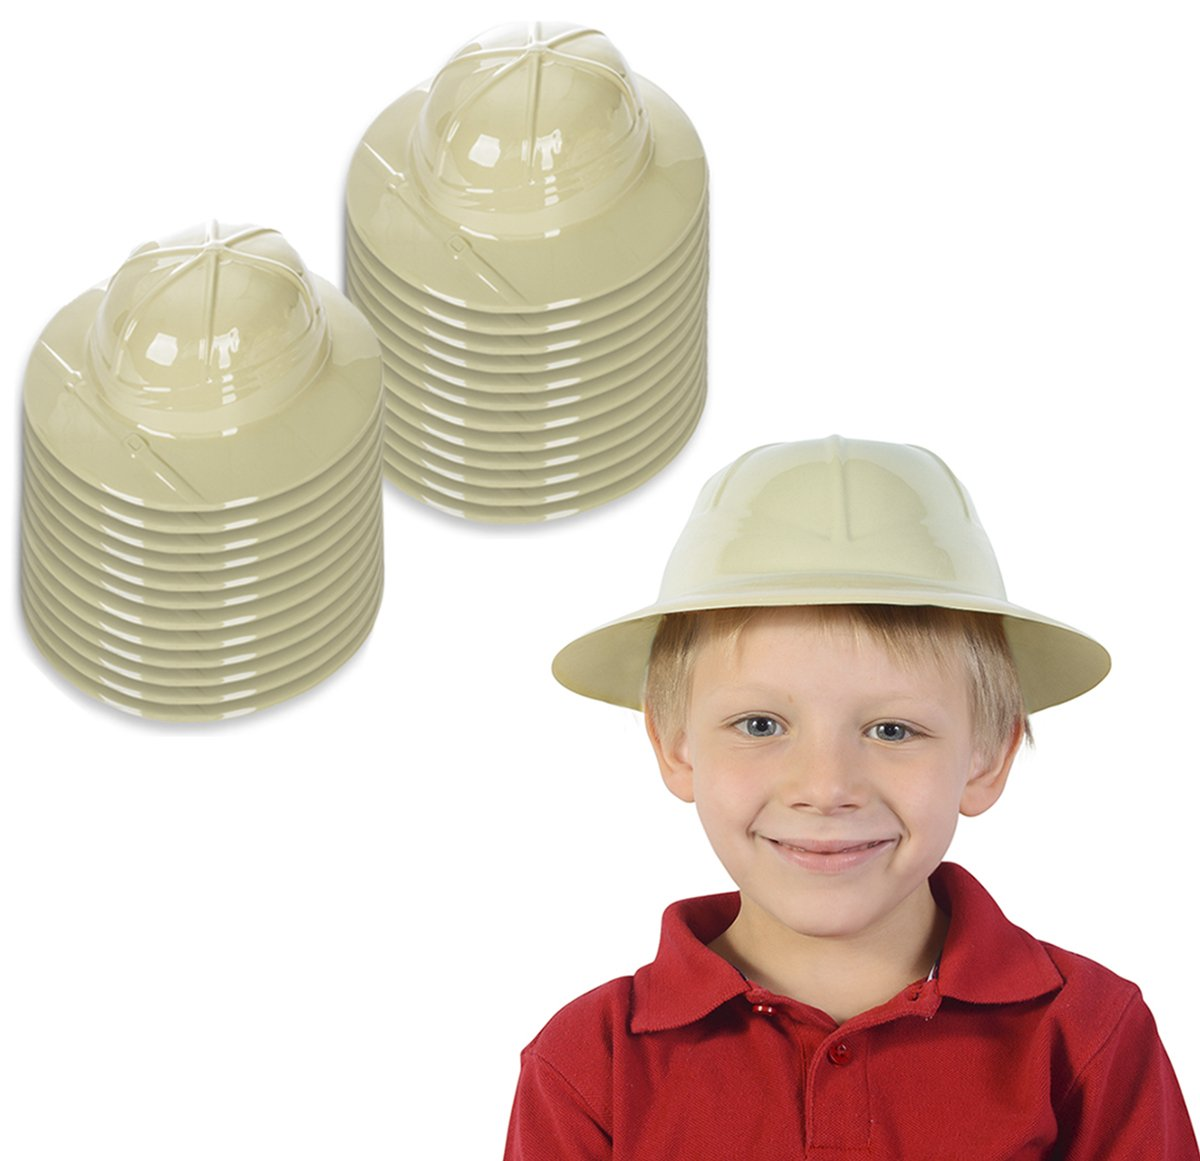 Funny Party Hats Safari Hat Party Favor - Jungle Party Supplies - Pith Helmets for Kids - Safari Party Supplies (24 Pack) by Funny Party Hats